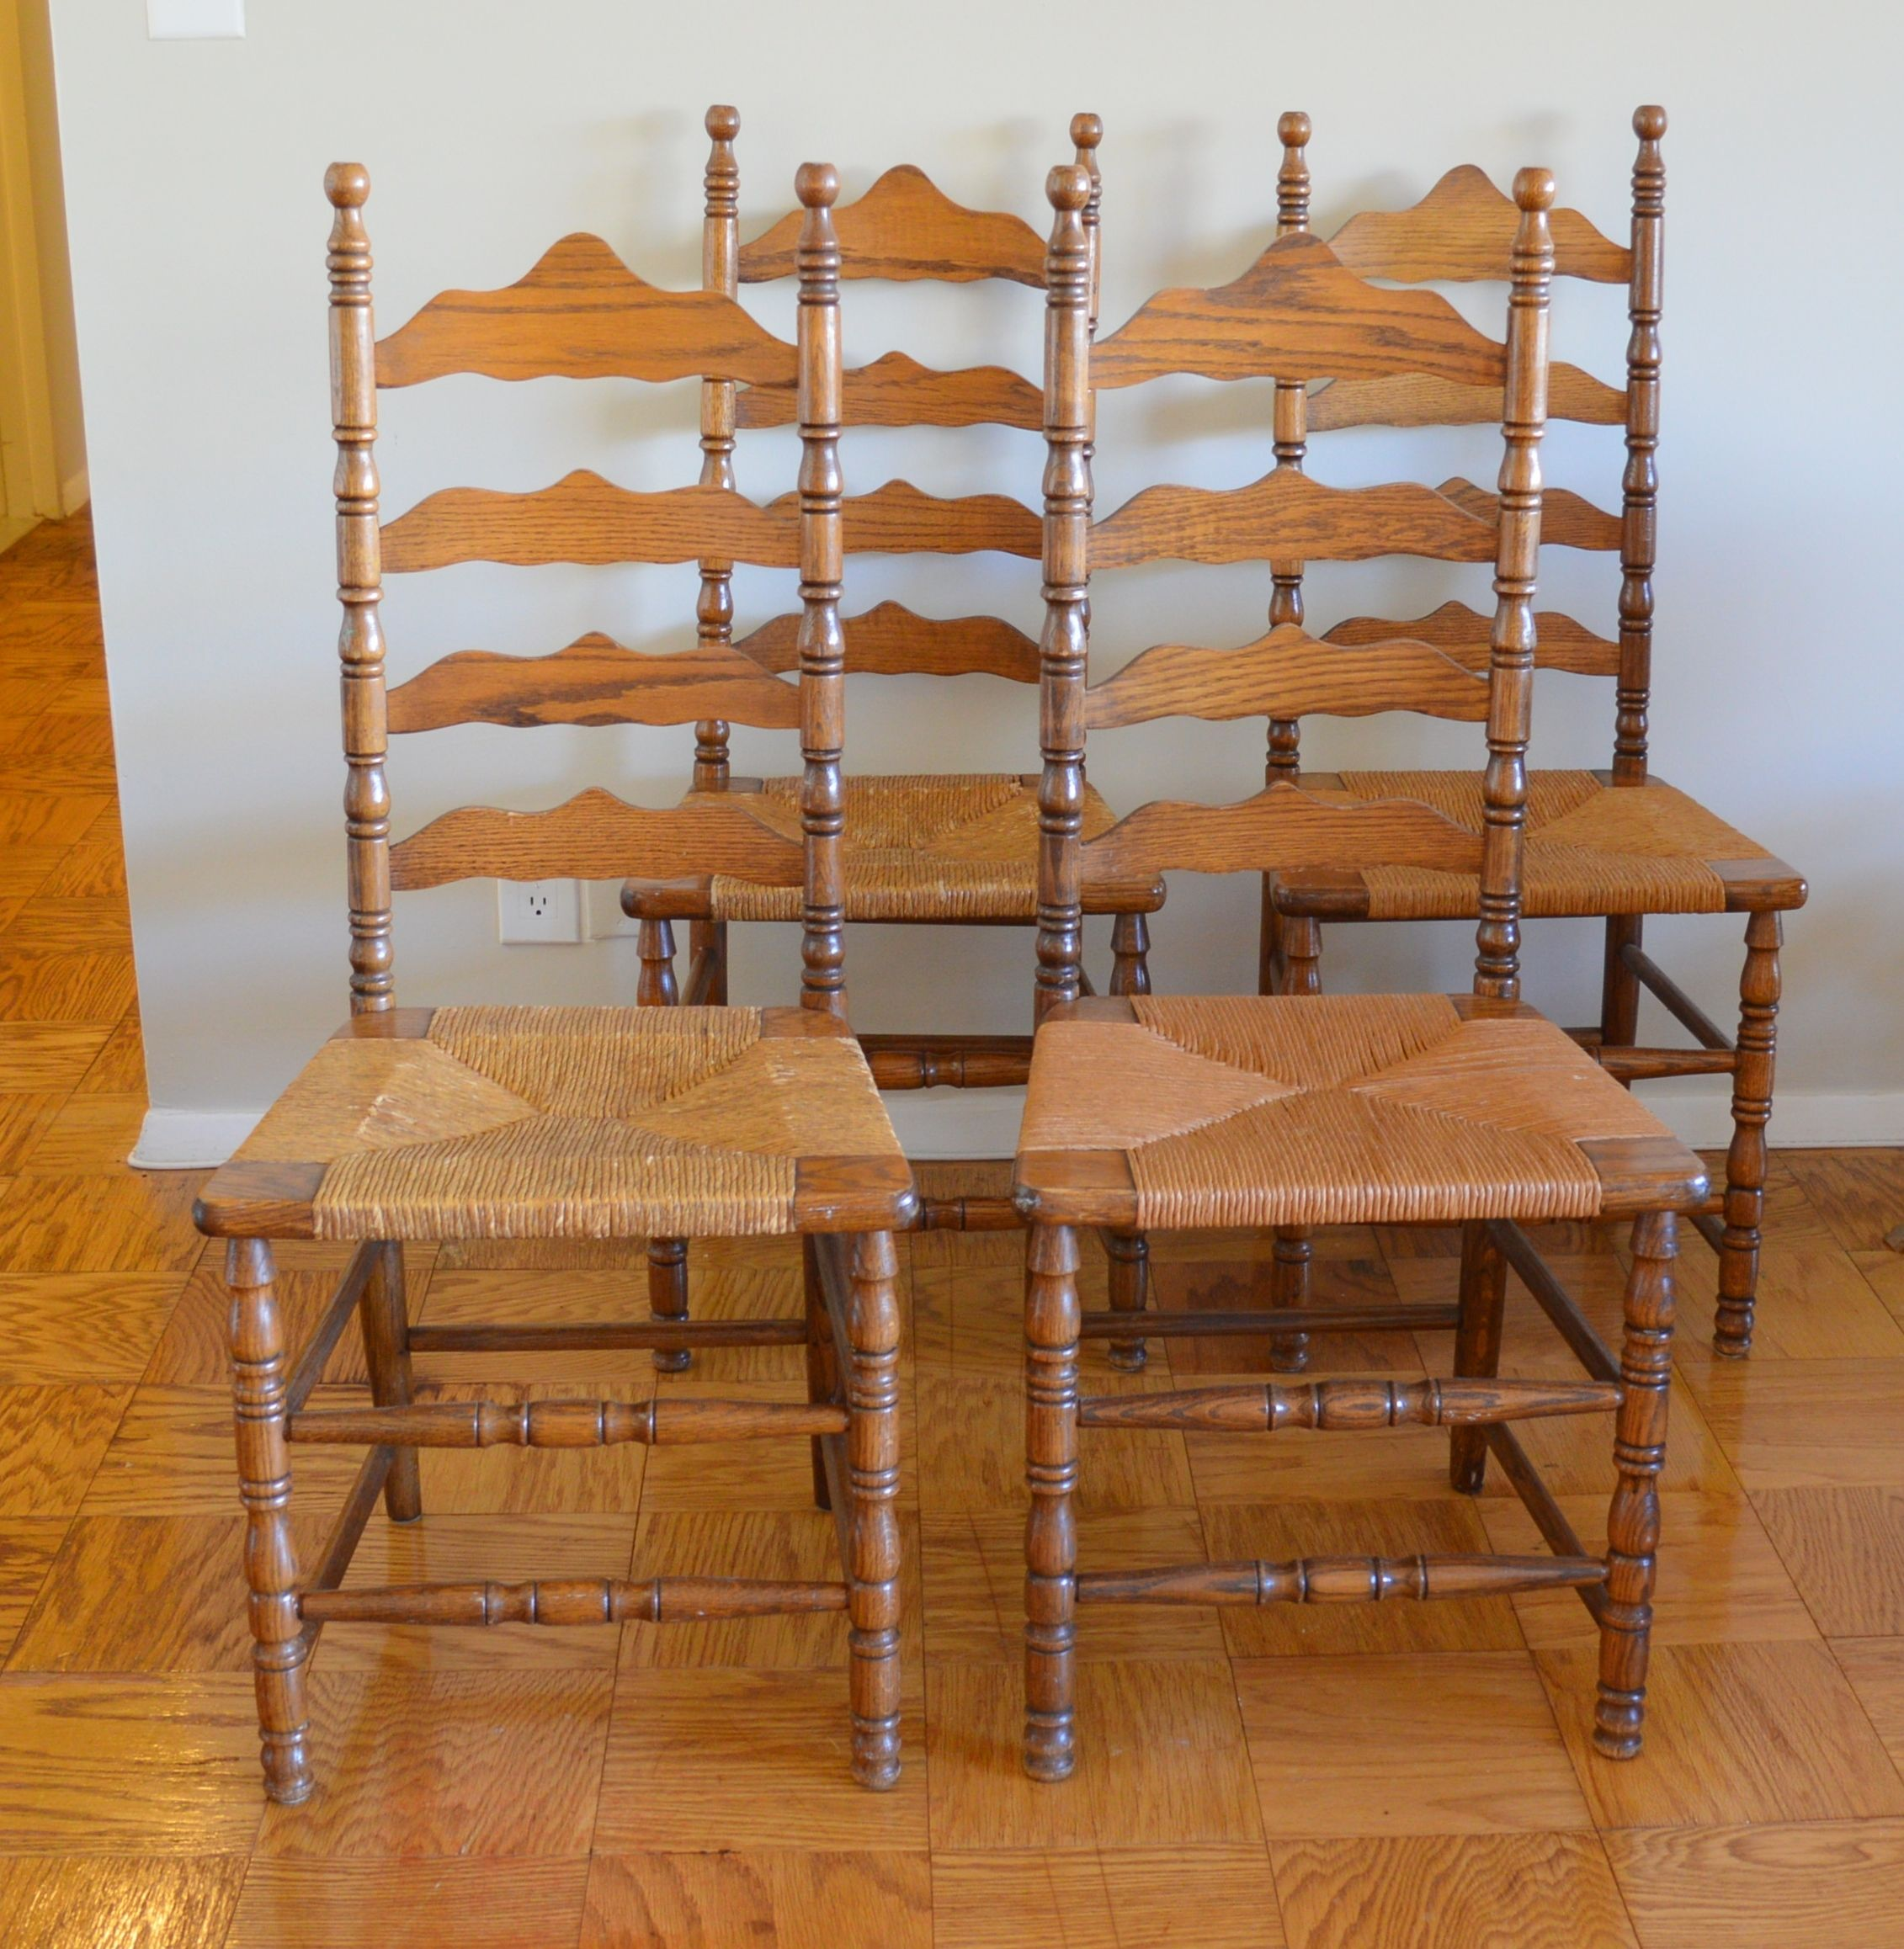 Picked up these 4 vintage ladder back chairs by the Boling chair